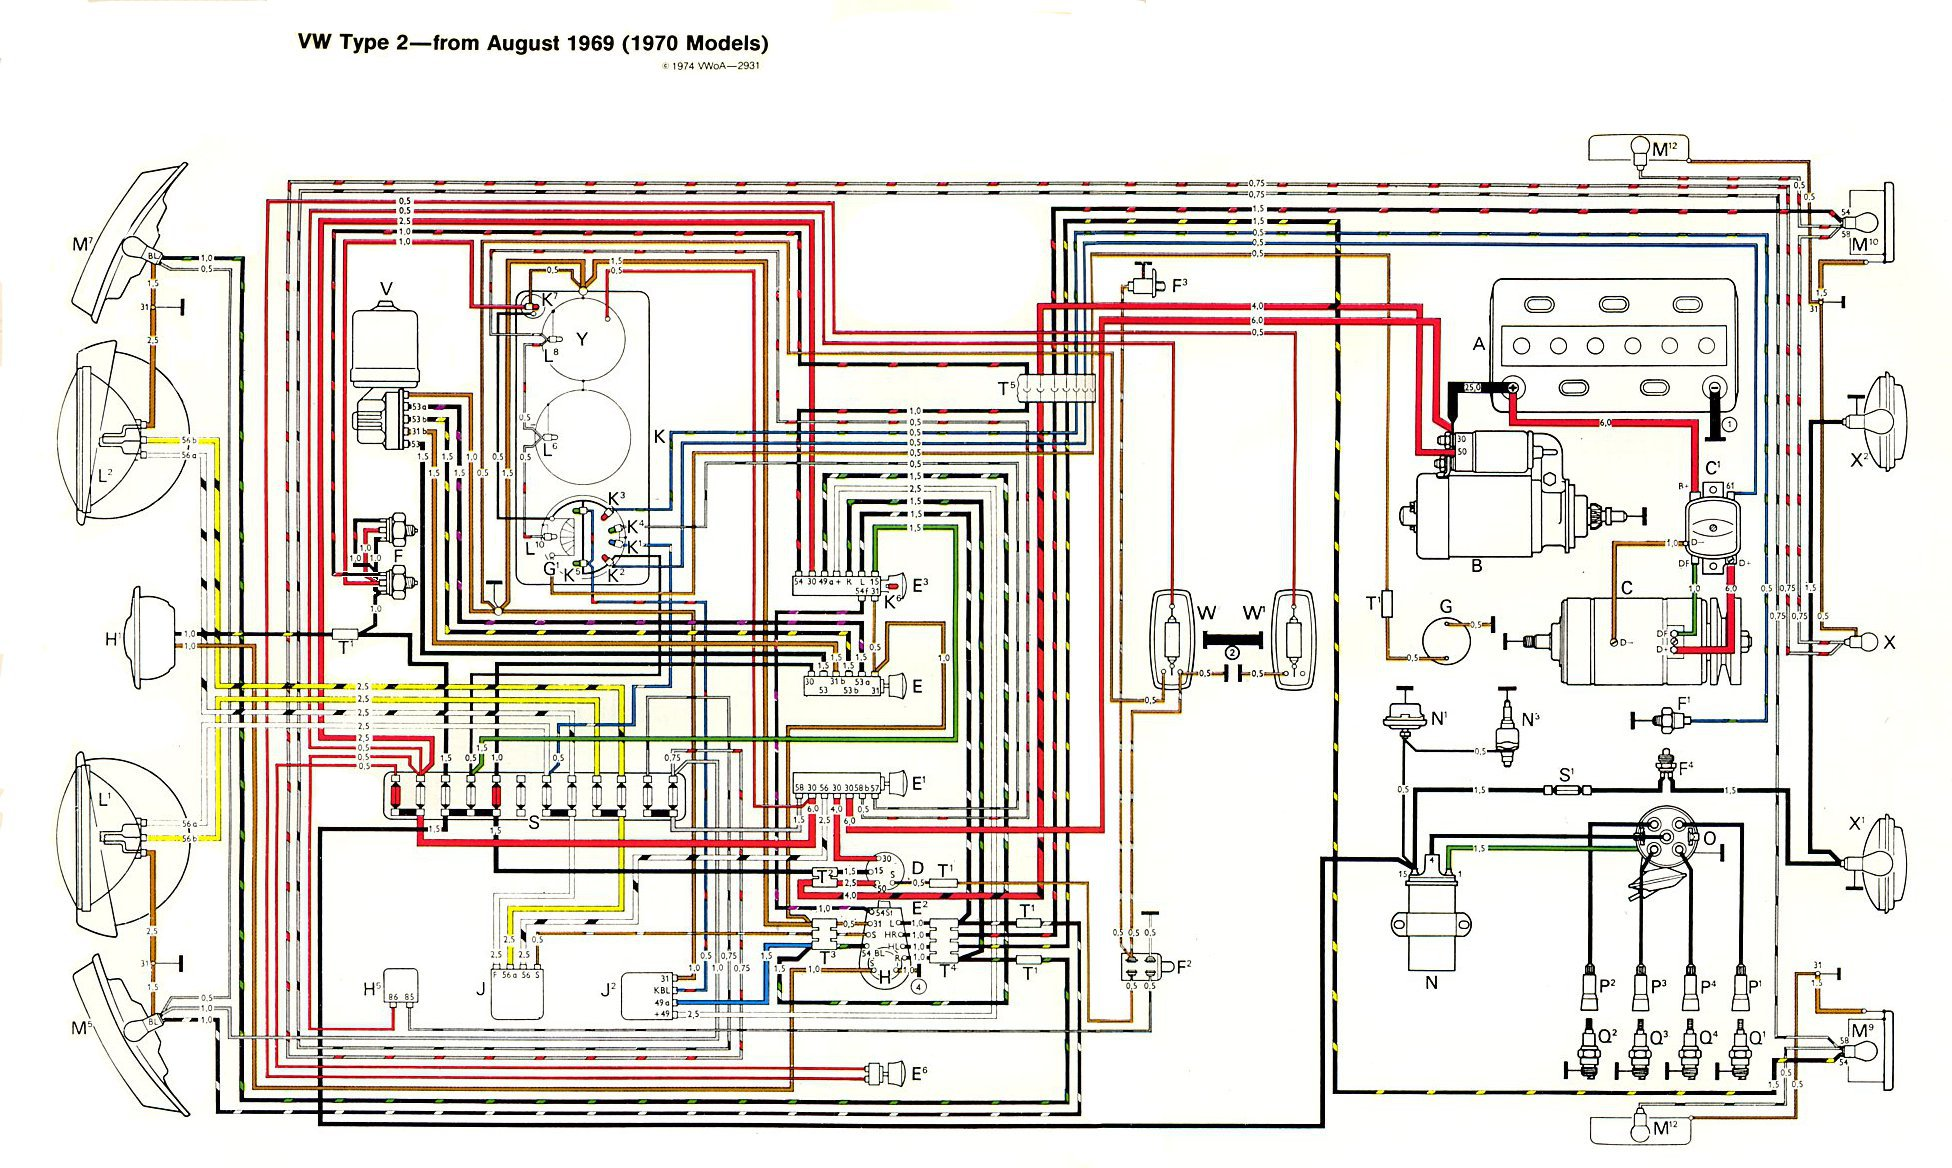 75 Super Beetle Wiring Diagram | Wiring Diagram on vw wire harness, vw wiring harness diagram, volkswagen beetle wiring harness, off road wiring harness, vw wiring harness kits, pontiac bonneville wiring harness, motorcycle wiring harness, camper wiring harness, vw engine wiring harness, vw bus alternator wiring, dodge challenger wiring harness, vw bus ignition wiring, vw thing wiring harness, porsche wiring harness, kia sportage wiring harness, volkswagen type 3 wiring harness, vw trike wiring harness, vintage vw wiring harness, trailer wiring harness, honda accord wiring harness,